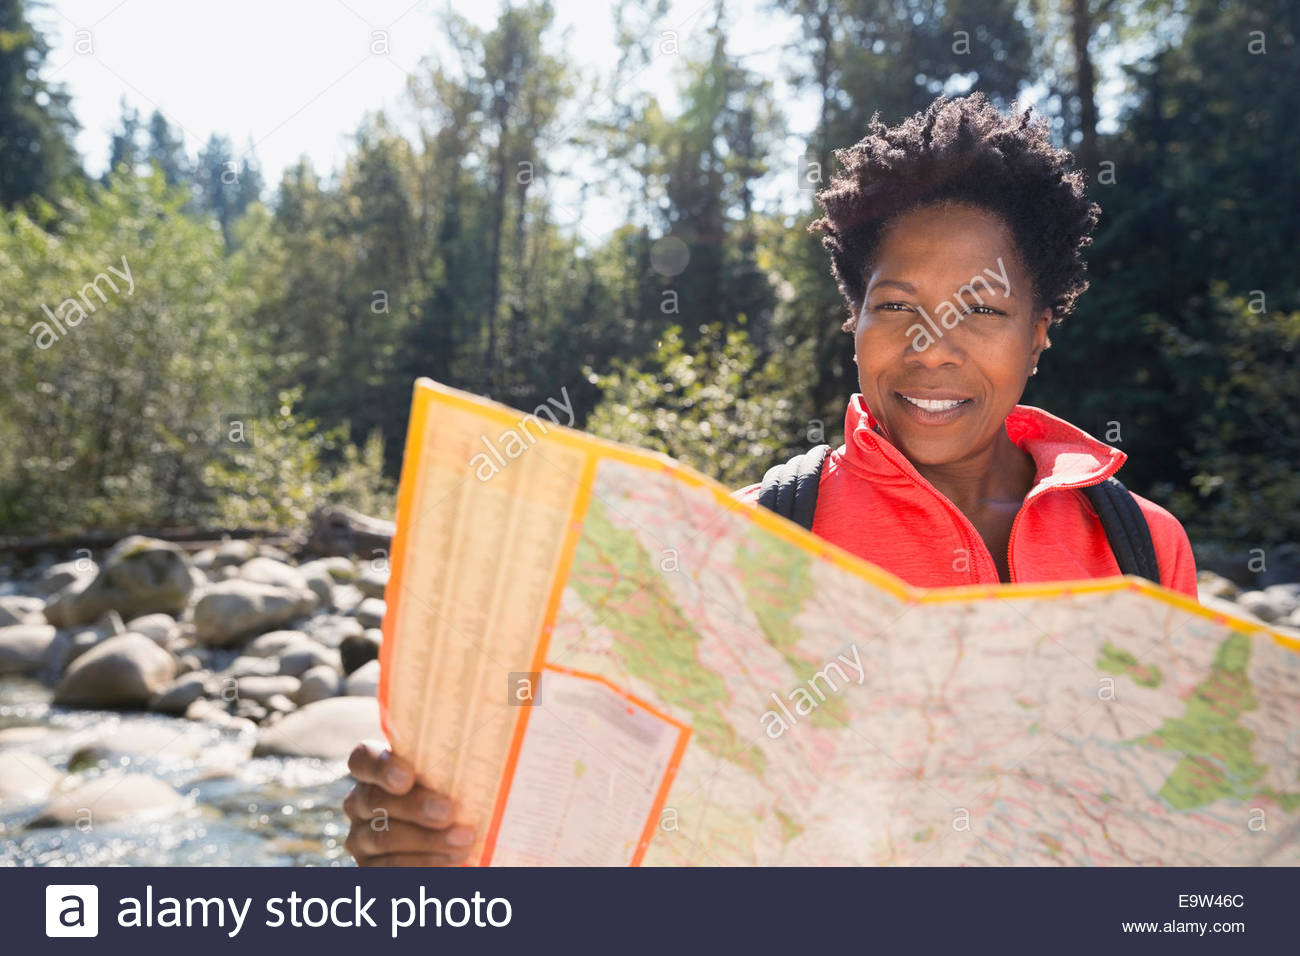 Woman looking at trail map in sunny woods - Stock Image